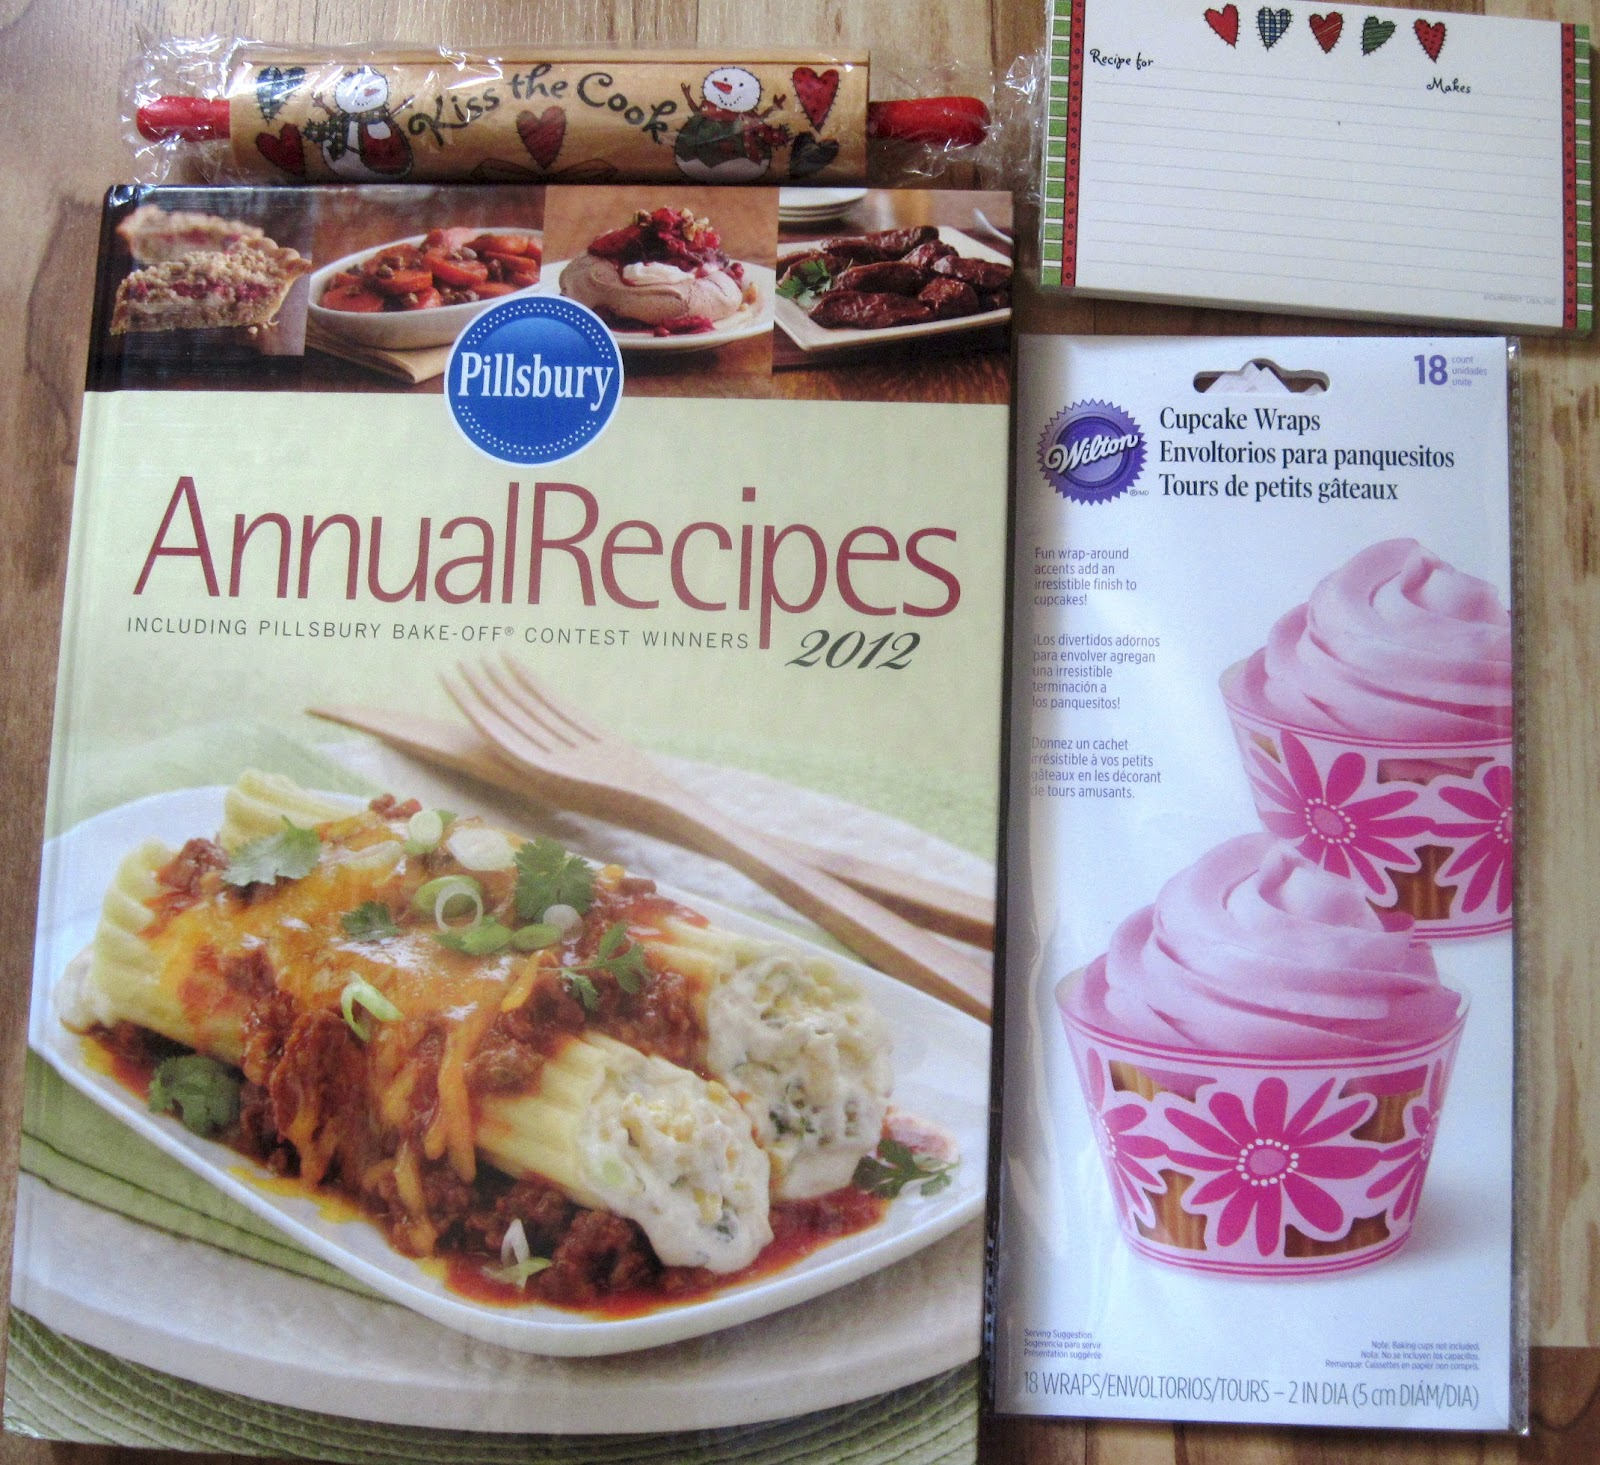 PILLSBURY ANNUAL RECIPES 2006, Hardcover, Includes Bake-off Contest Winners